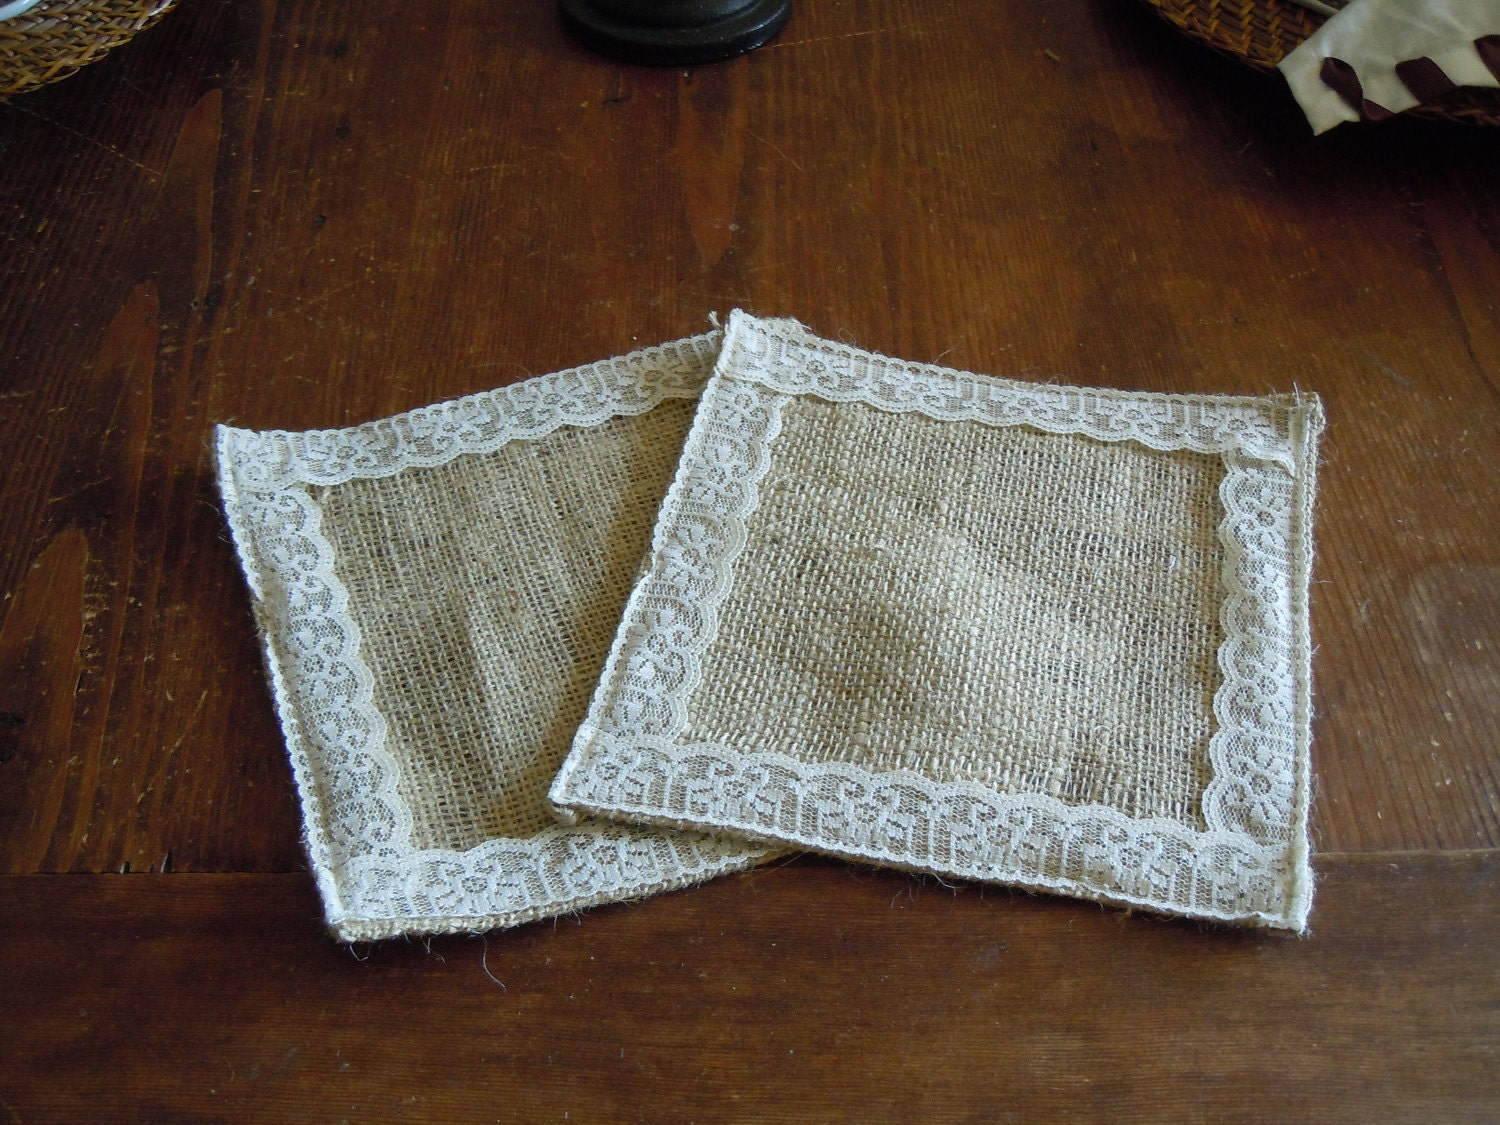 ... ivory lace Natural w/ivory lace Tan w/white lace Natural w/white lace